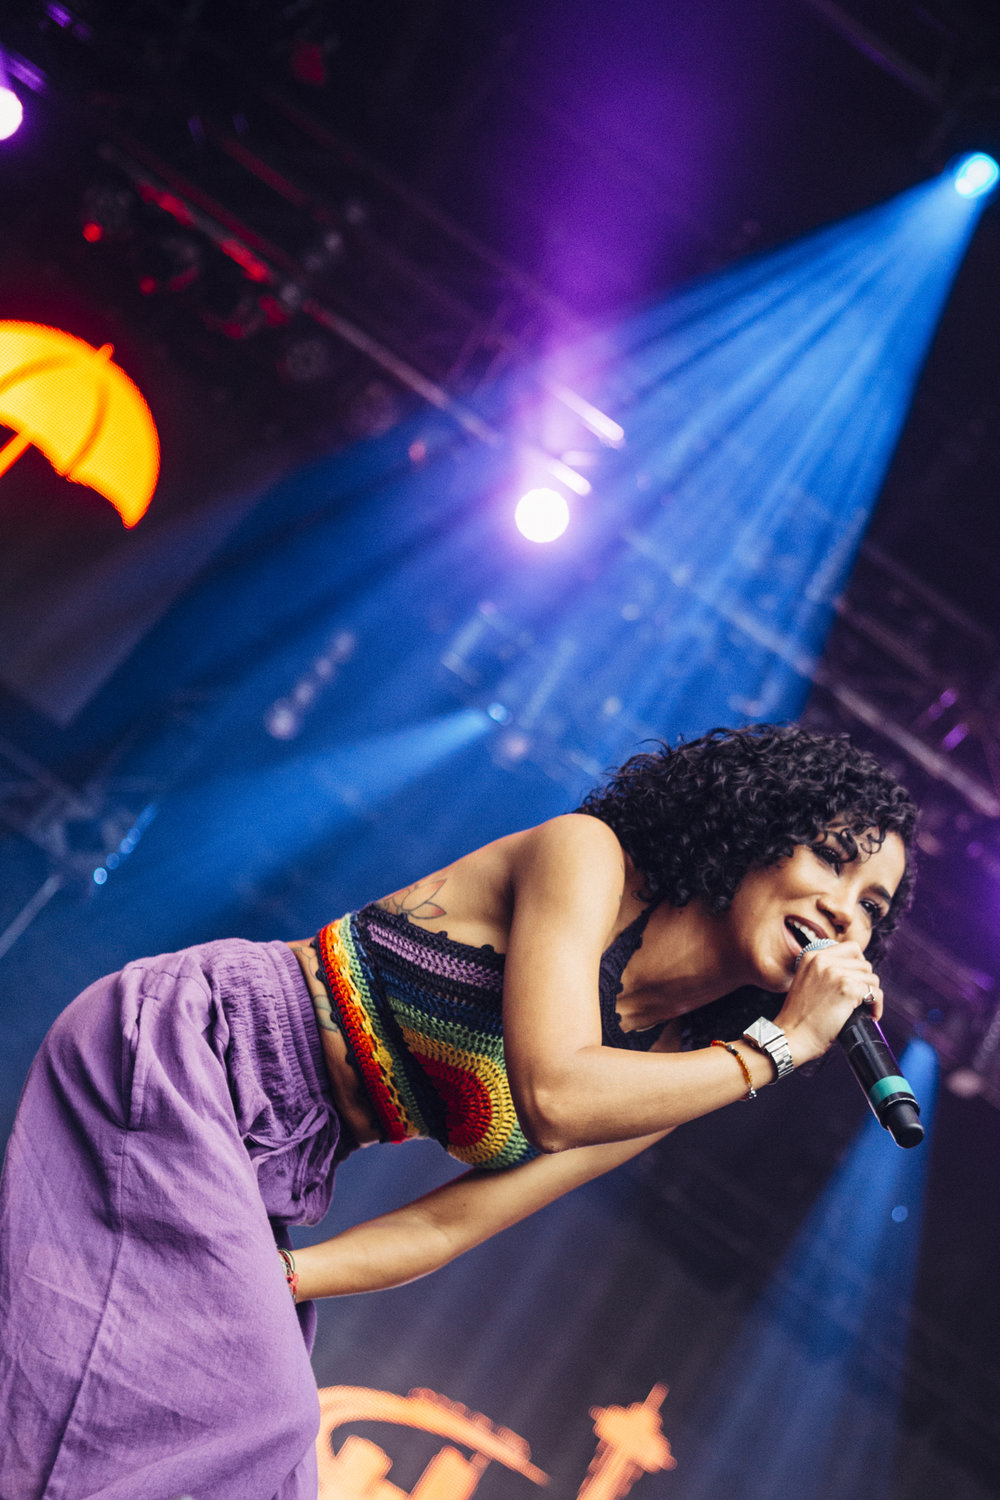 Jhene Aiko performs at Bumbershoot in 2015 (Kayla Johnson/Flickr Creative Commons)